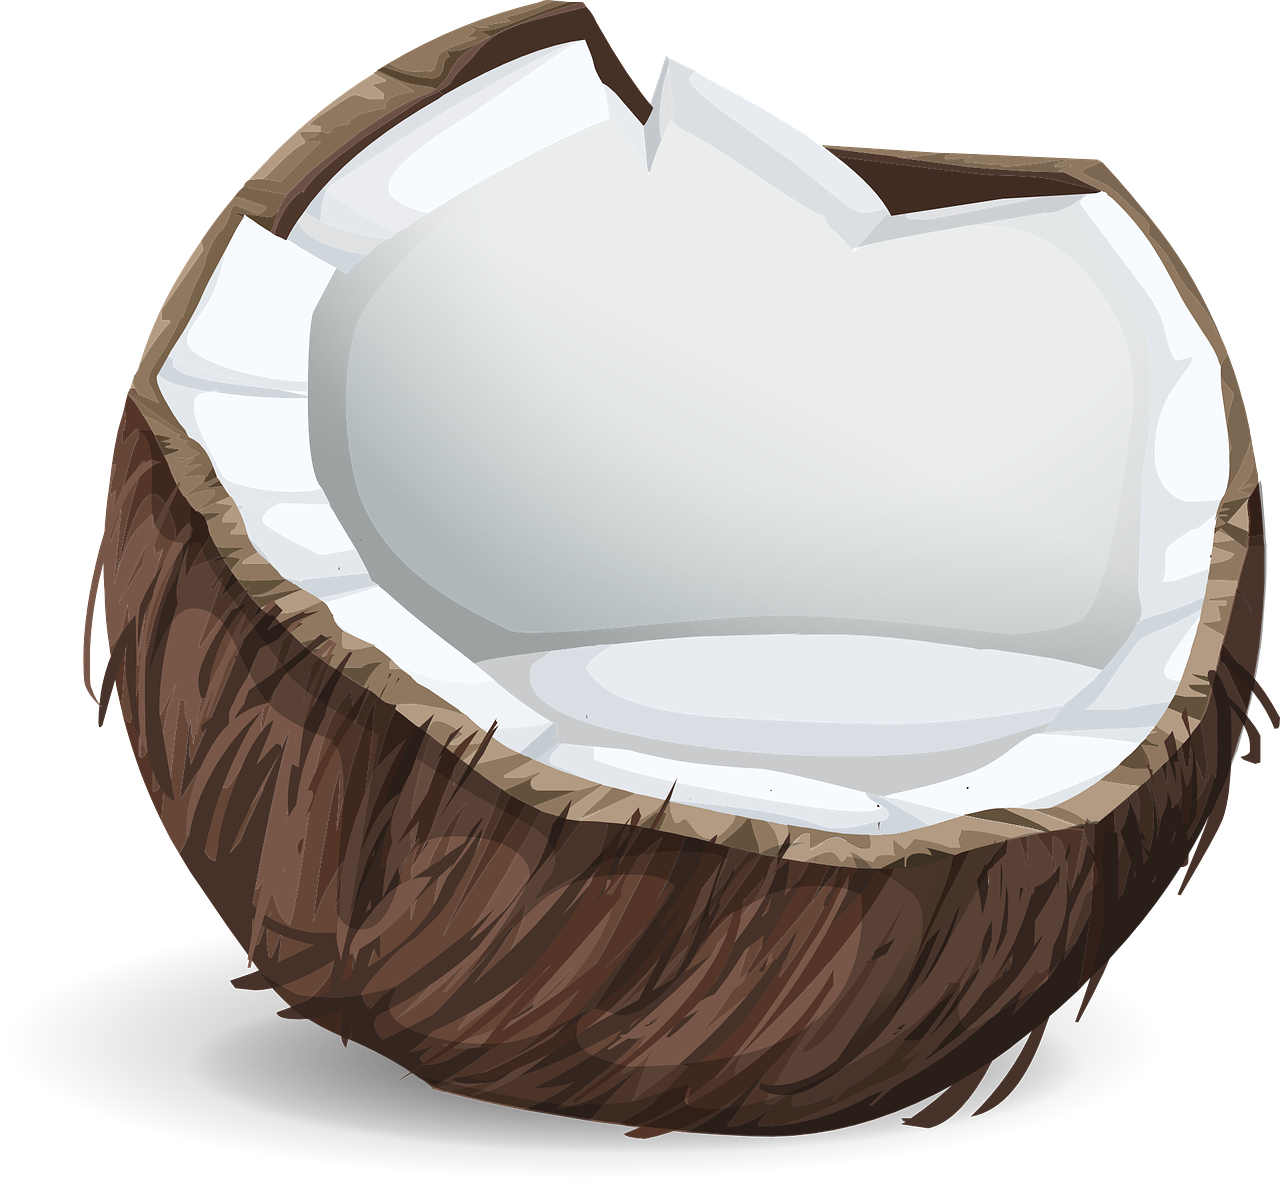 Why water filters should. Coconuts vector coconut husk clip download